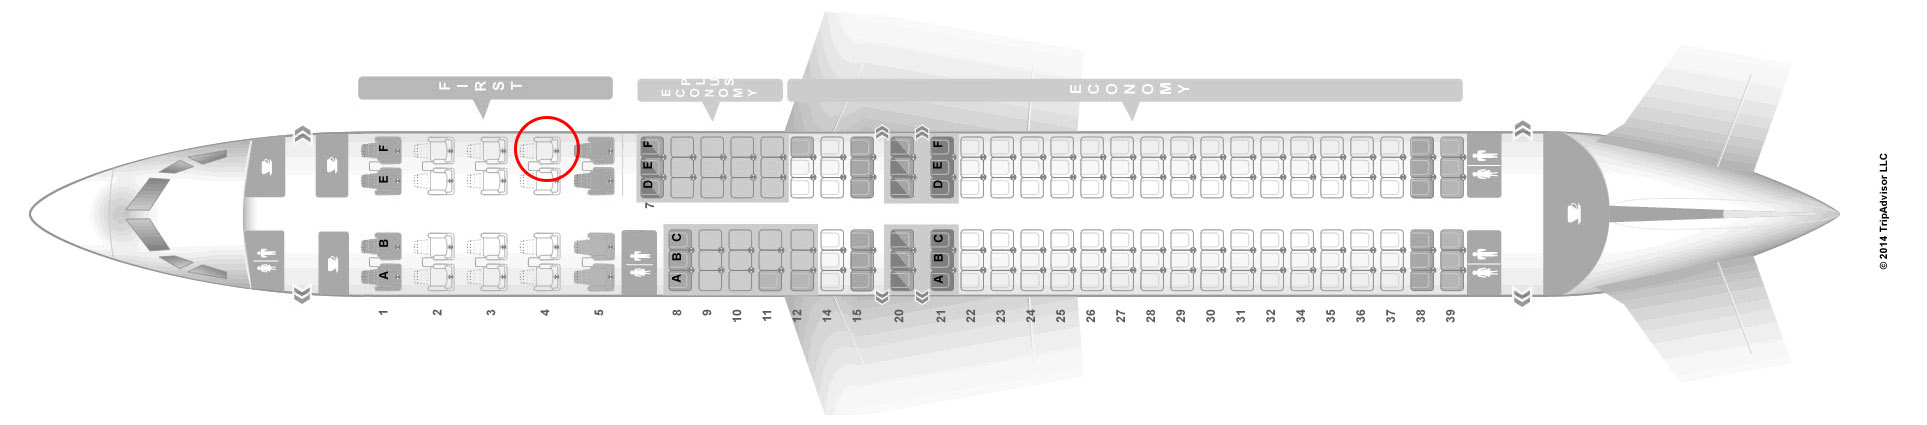 United 737-900 seat map